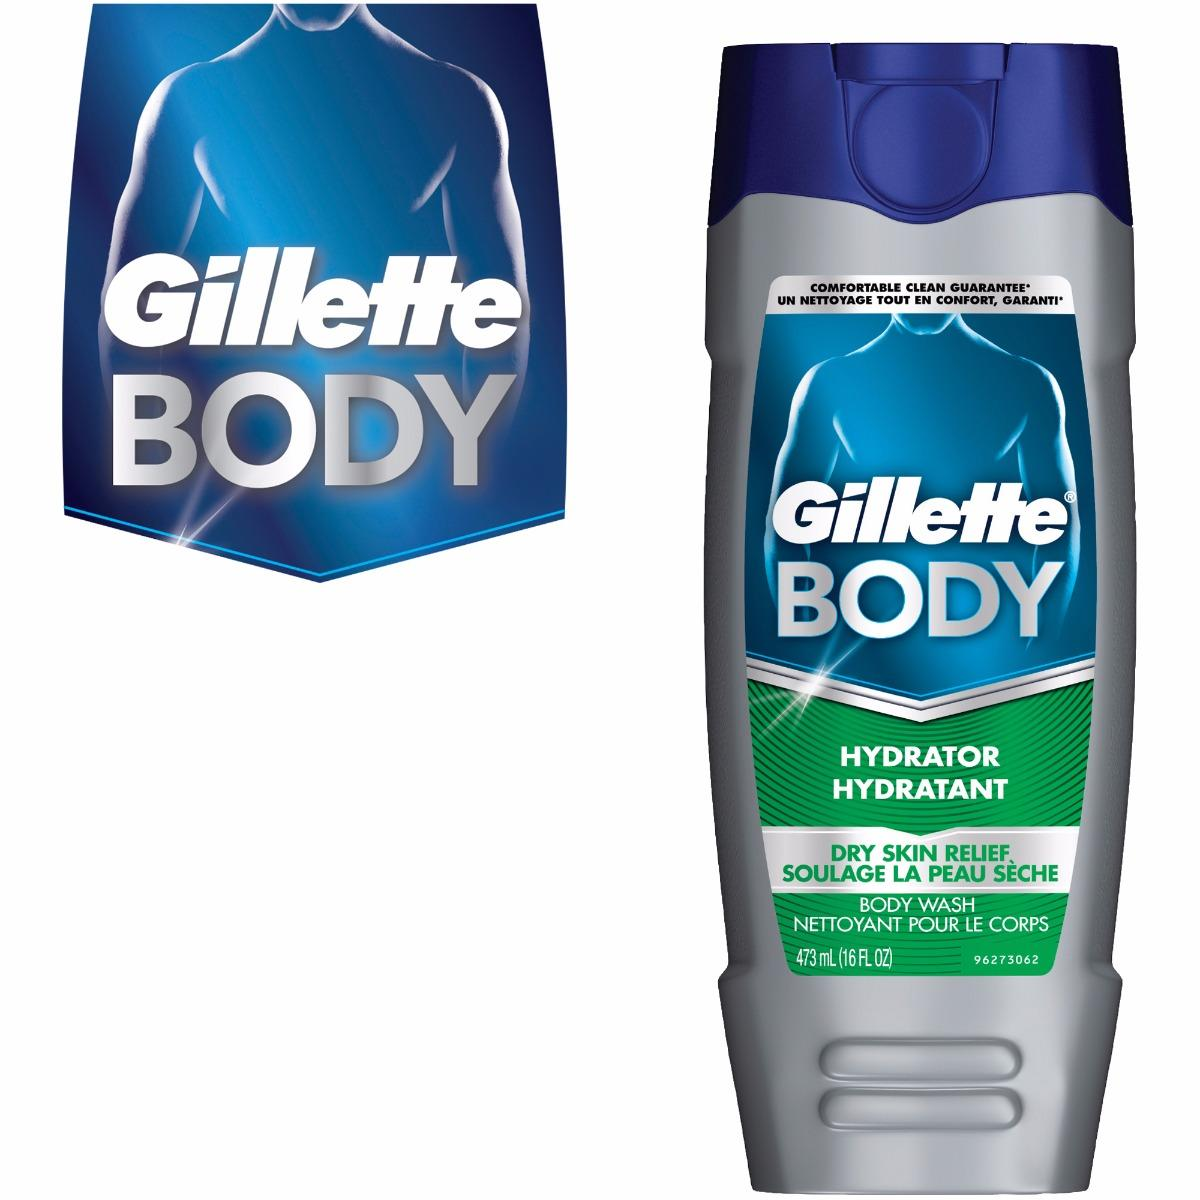 SỮA TẮM NAM GILLETTE BODY DRY SKIN RELIEF 473ml cao cấp